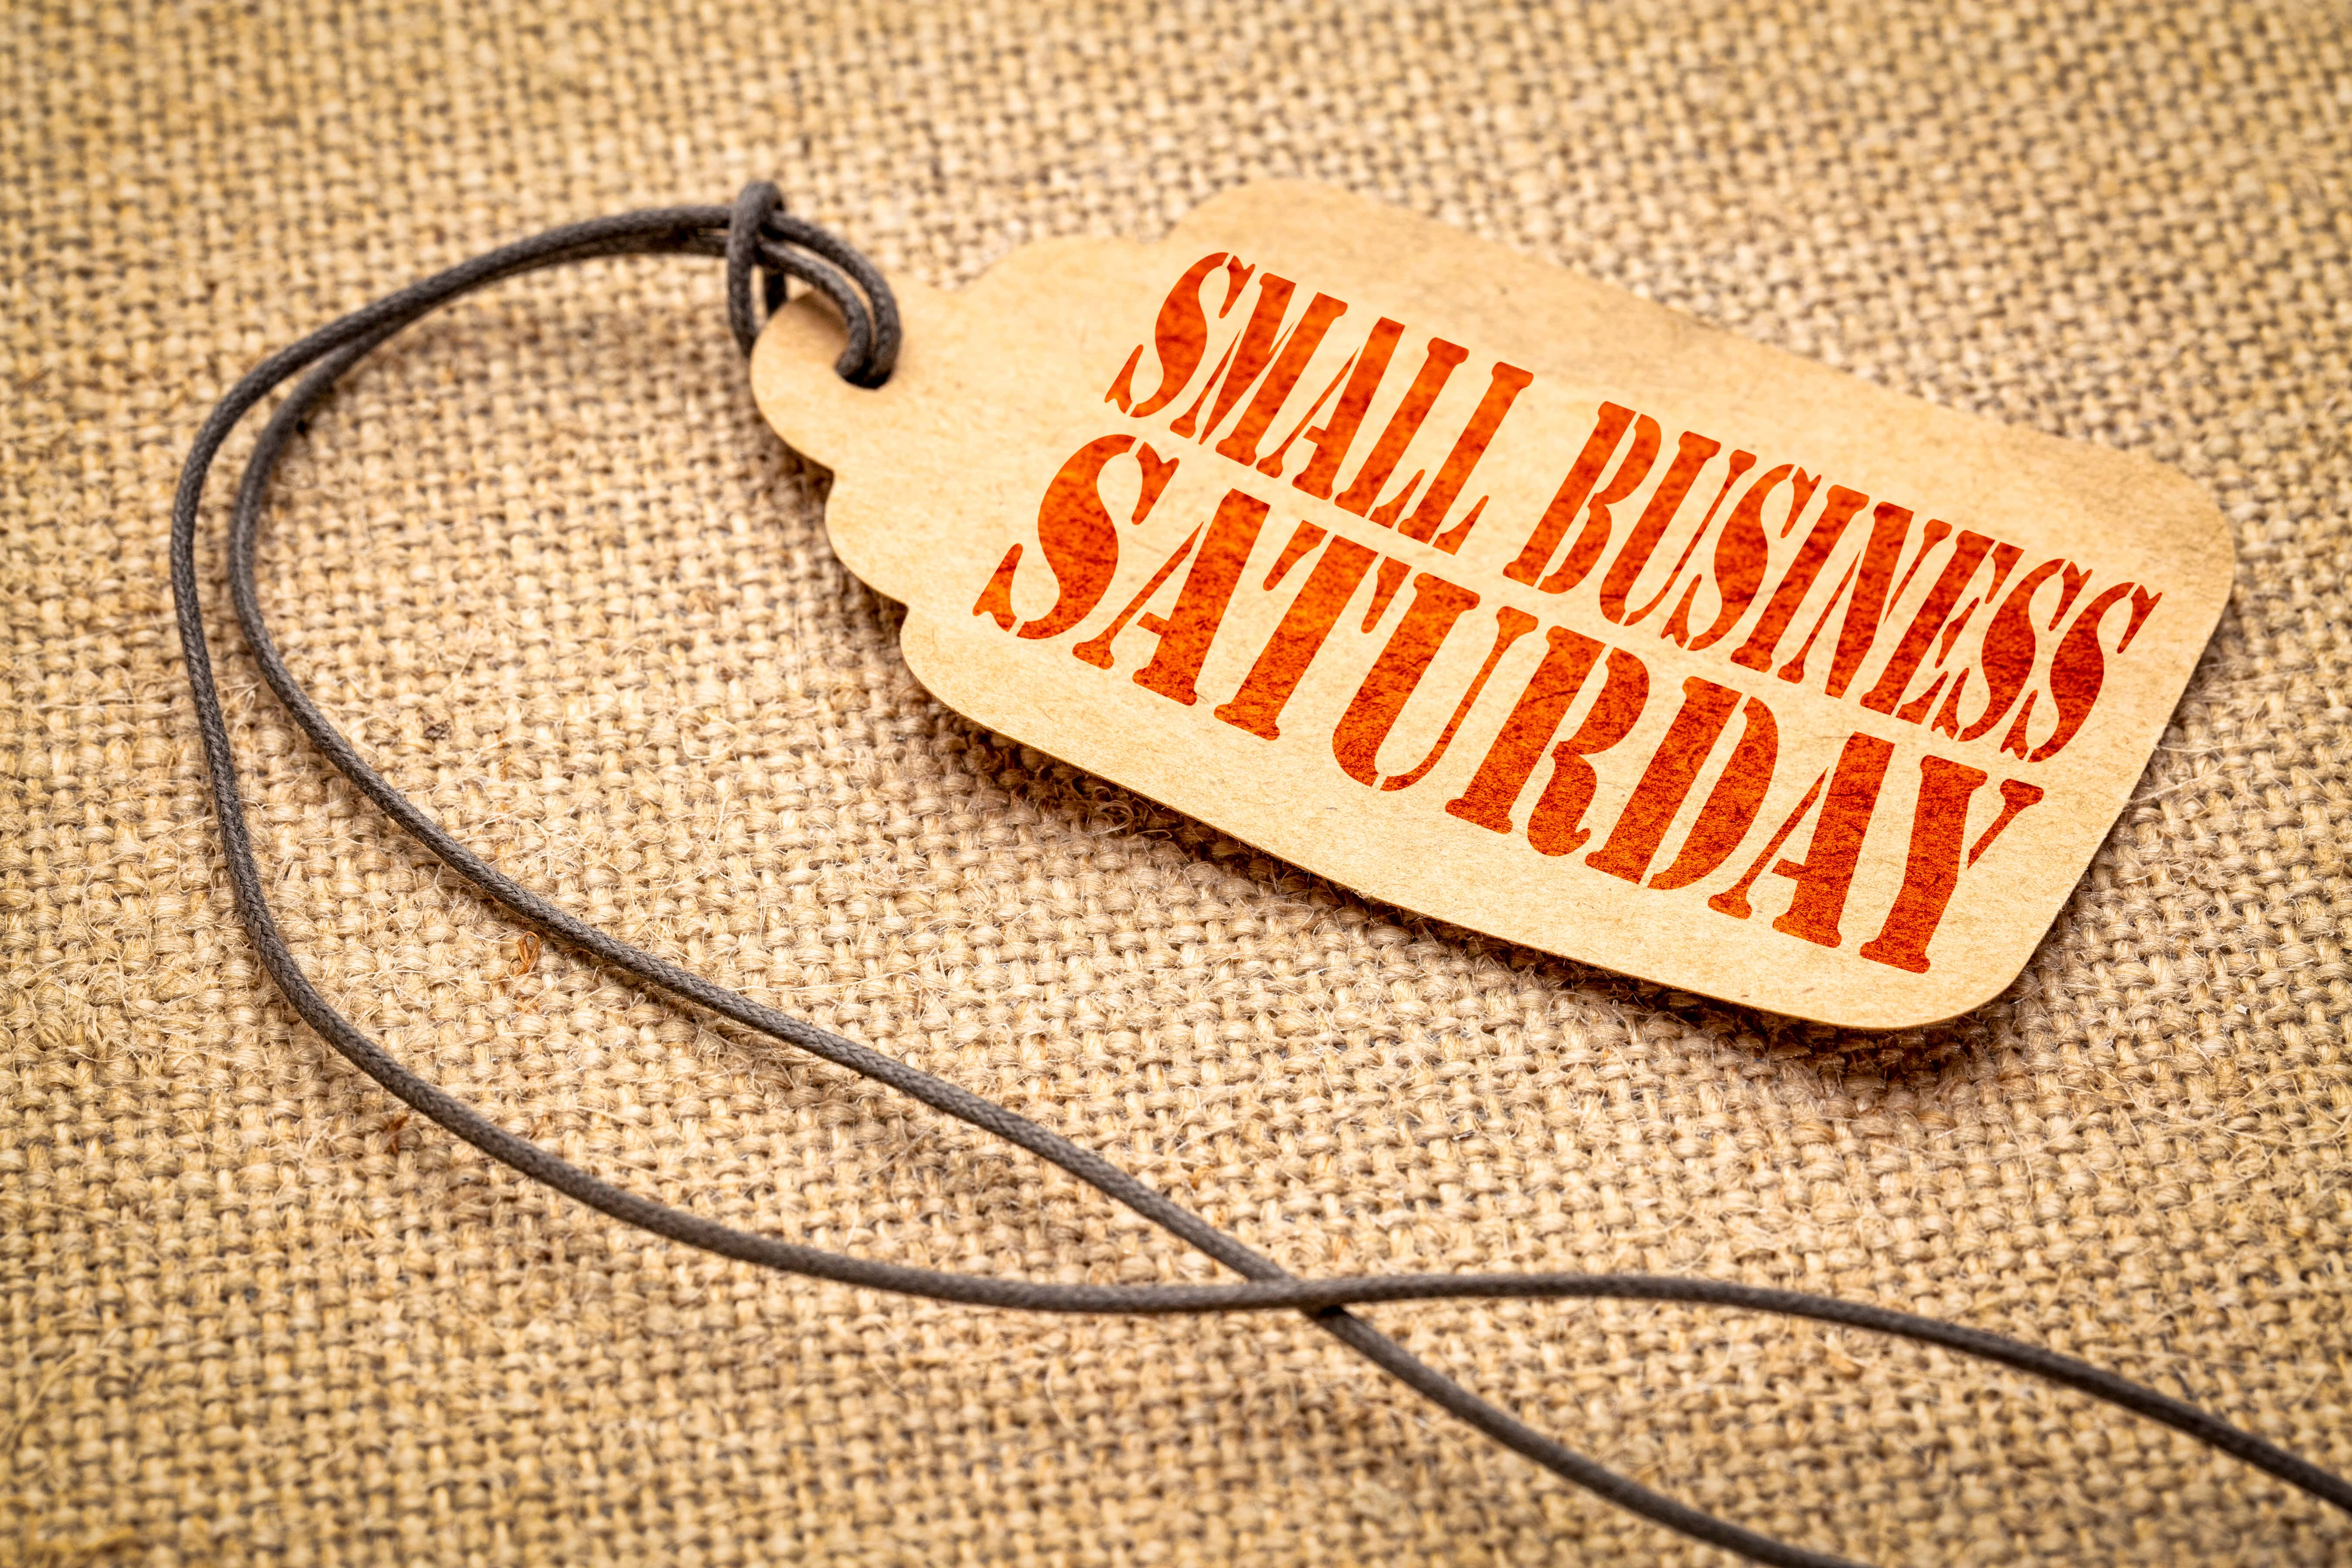 The importance of Small Business Saturday.